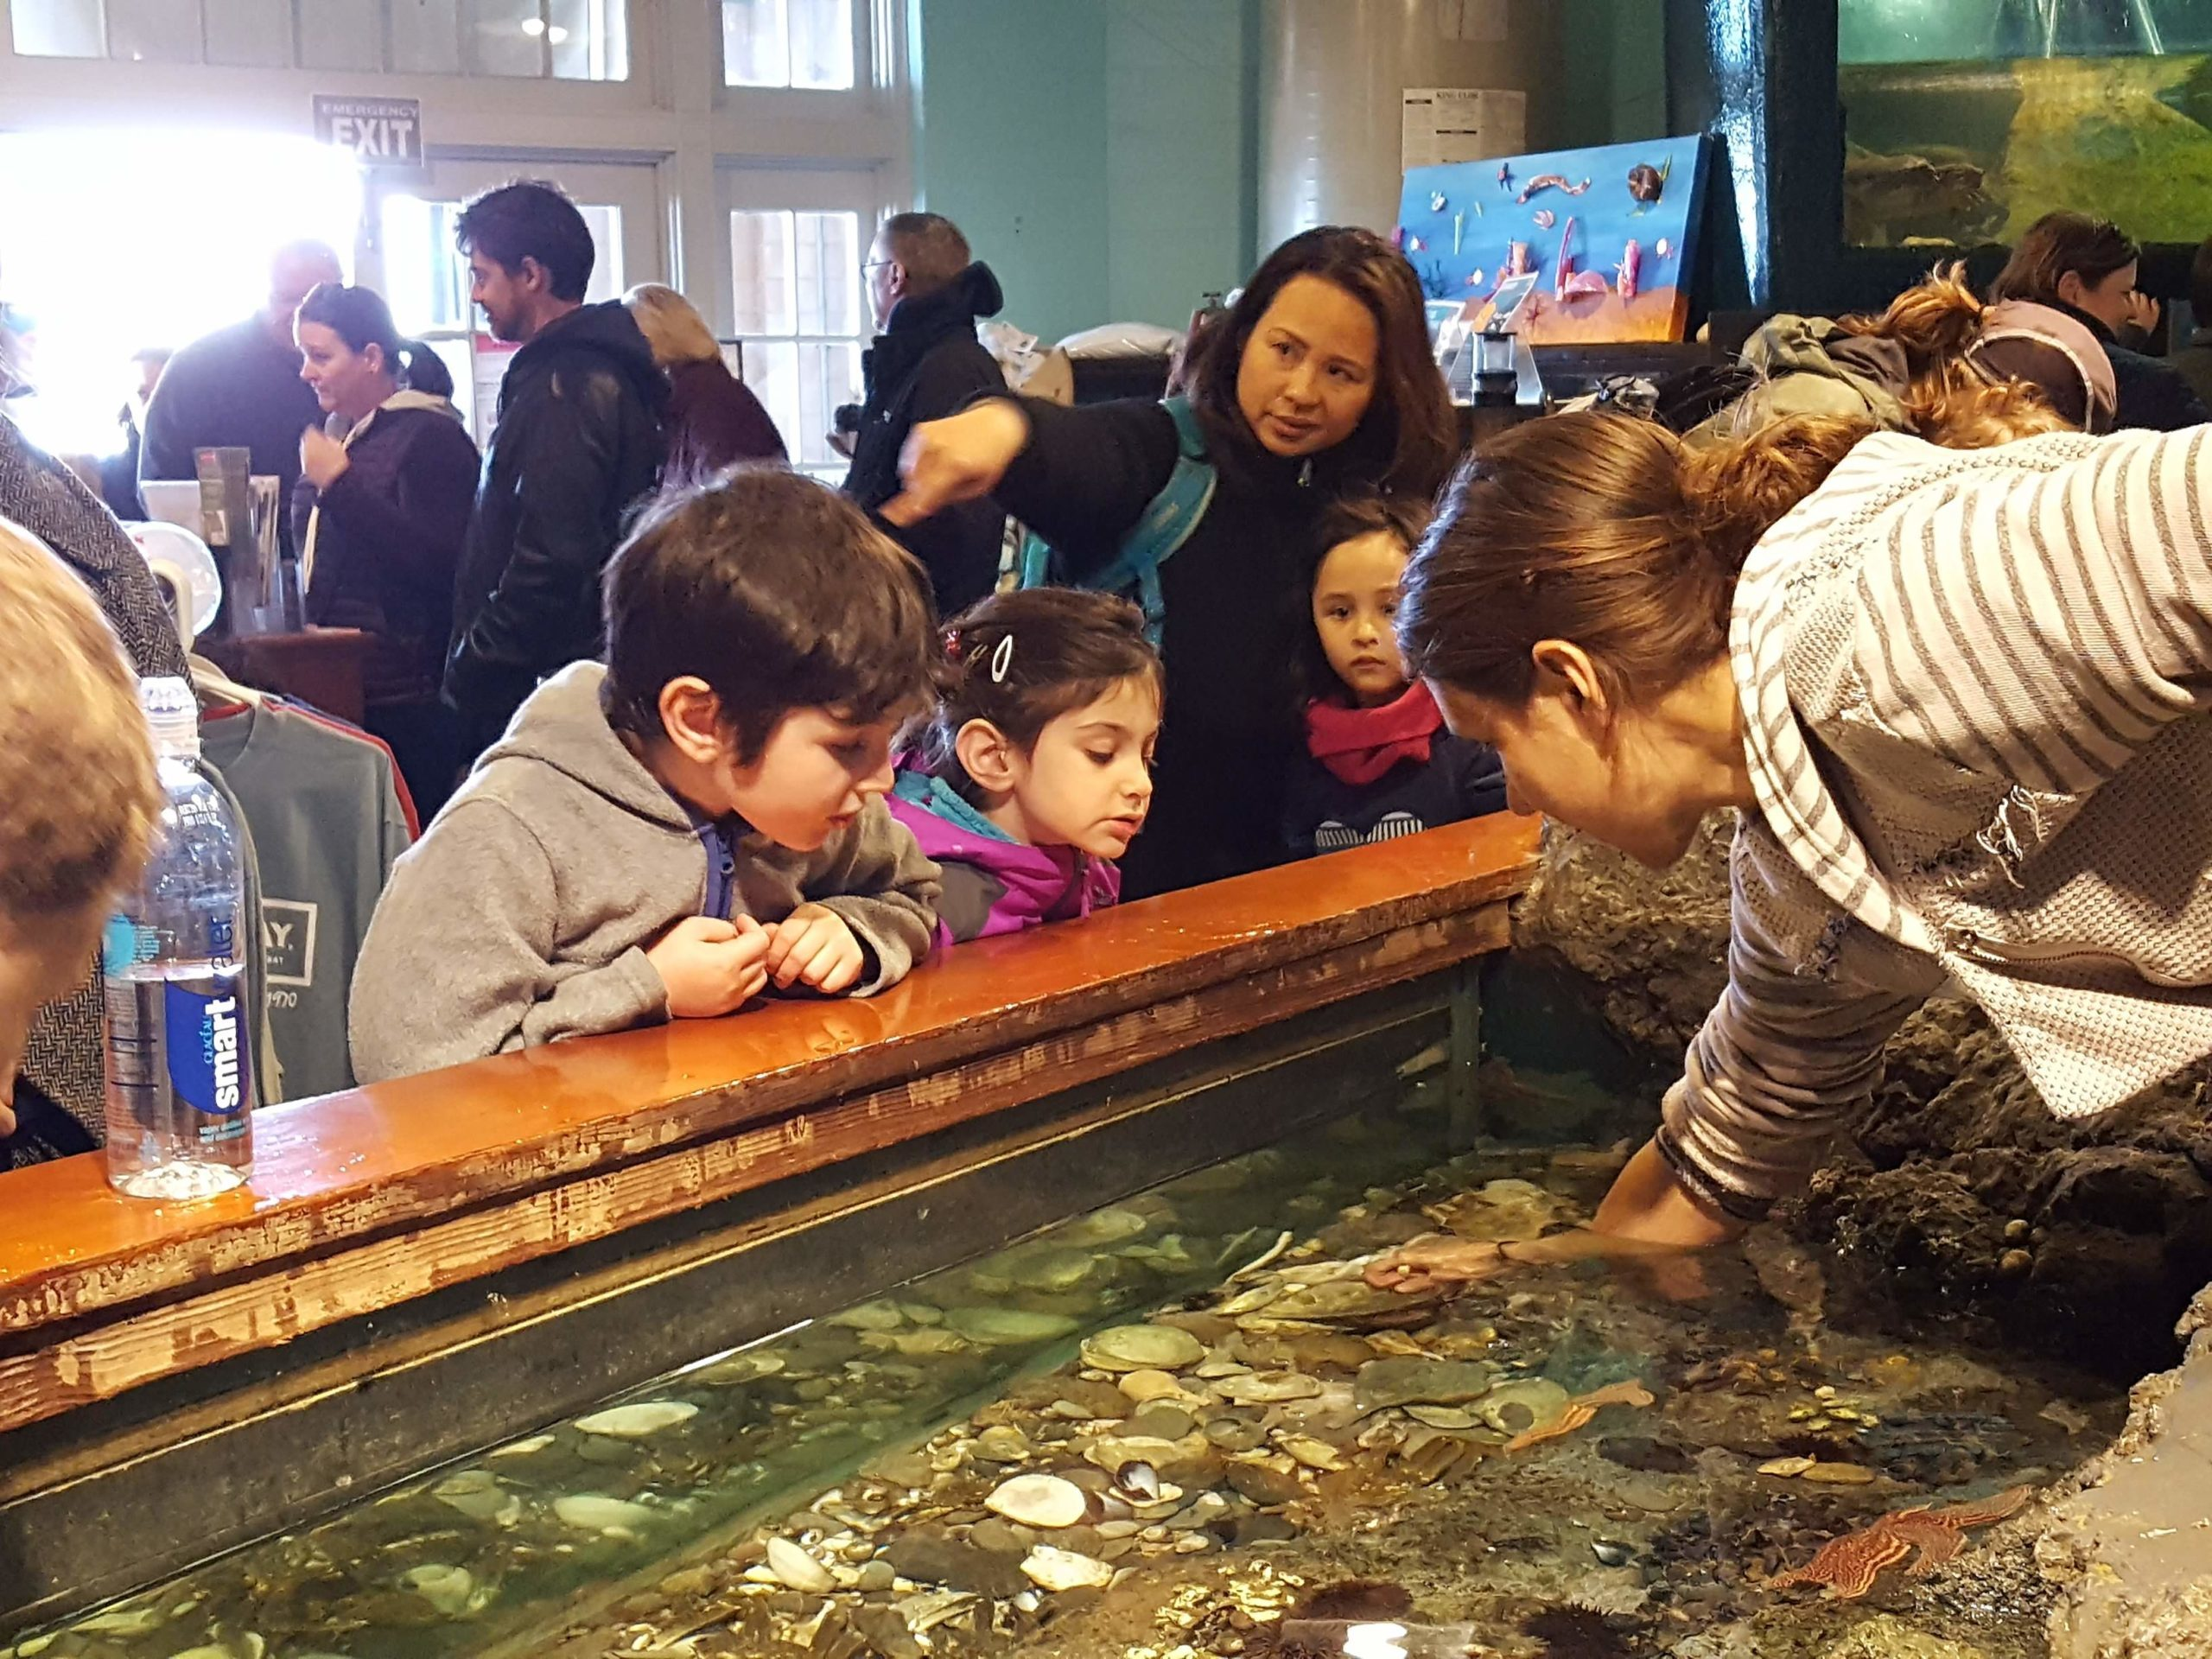 Save The Bay's Exploration Center and Aquarium is a hands-on, experiential learning center that delights and inspires thousands of visitors every year.